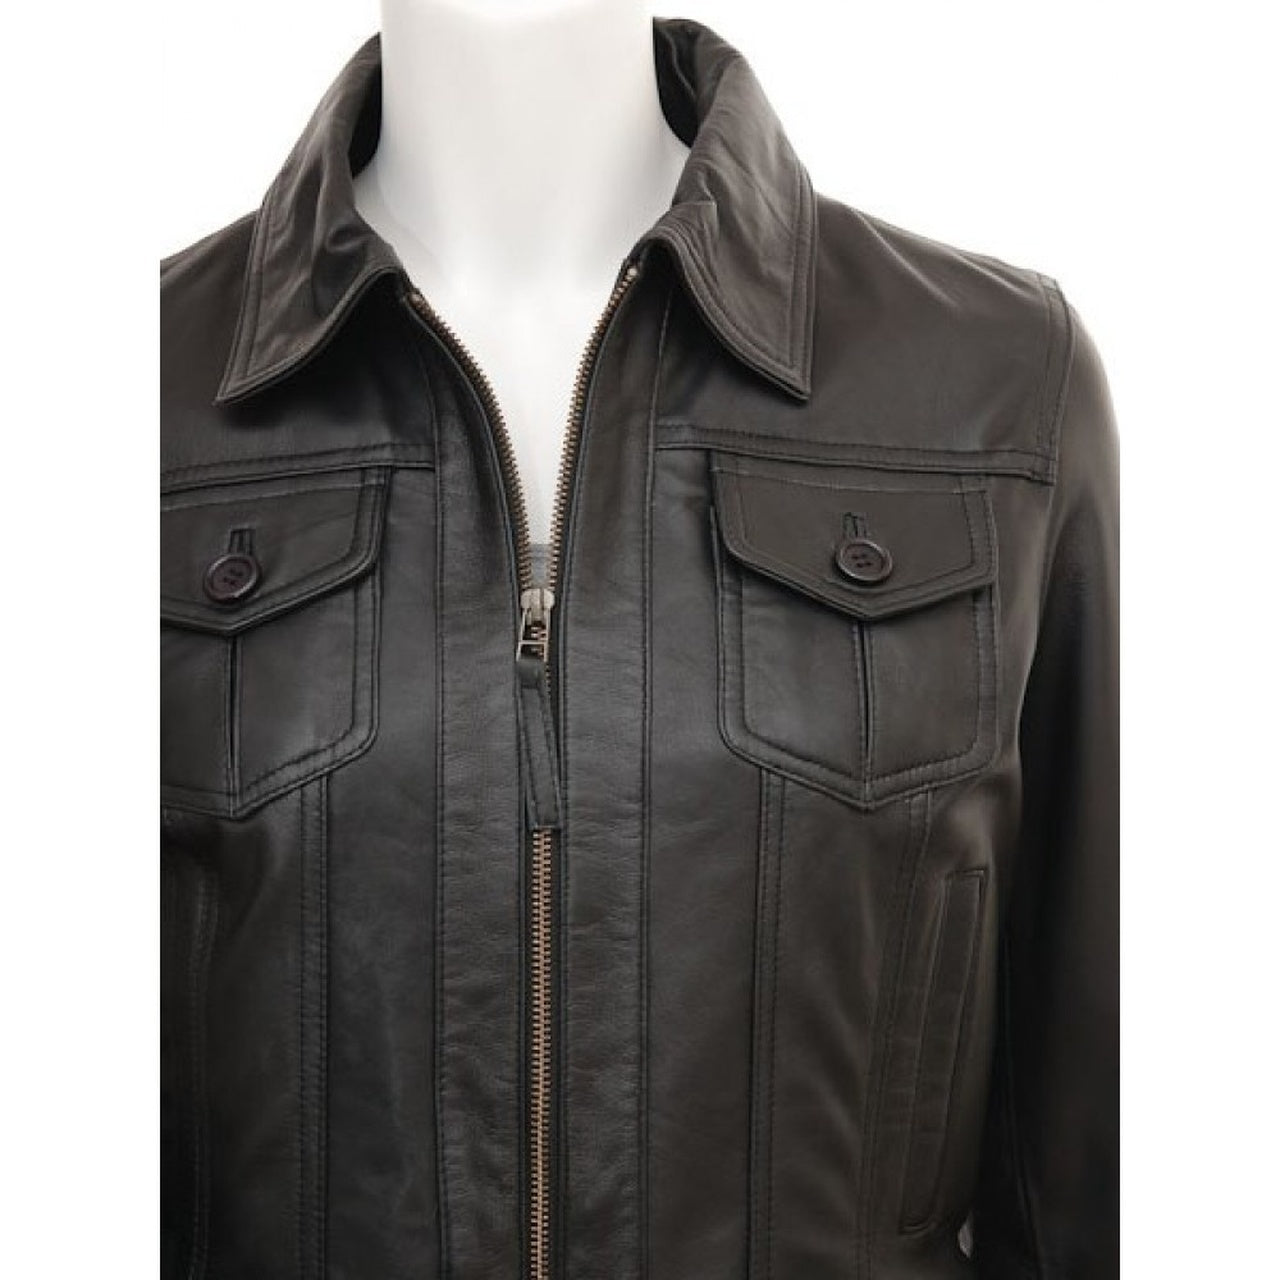 Black Front Pockets Stylish Biker Leather Jacket for Women - Leather Jacket